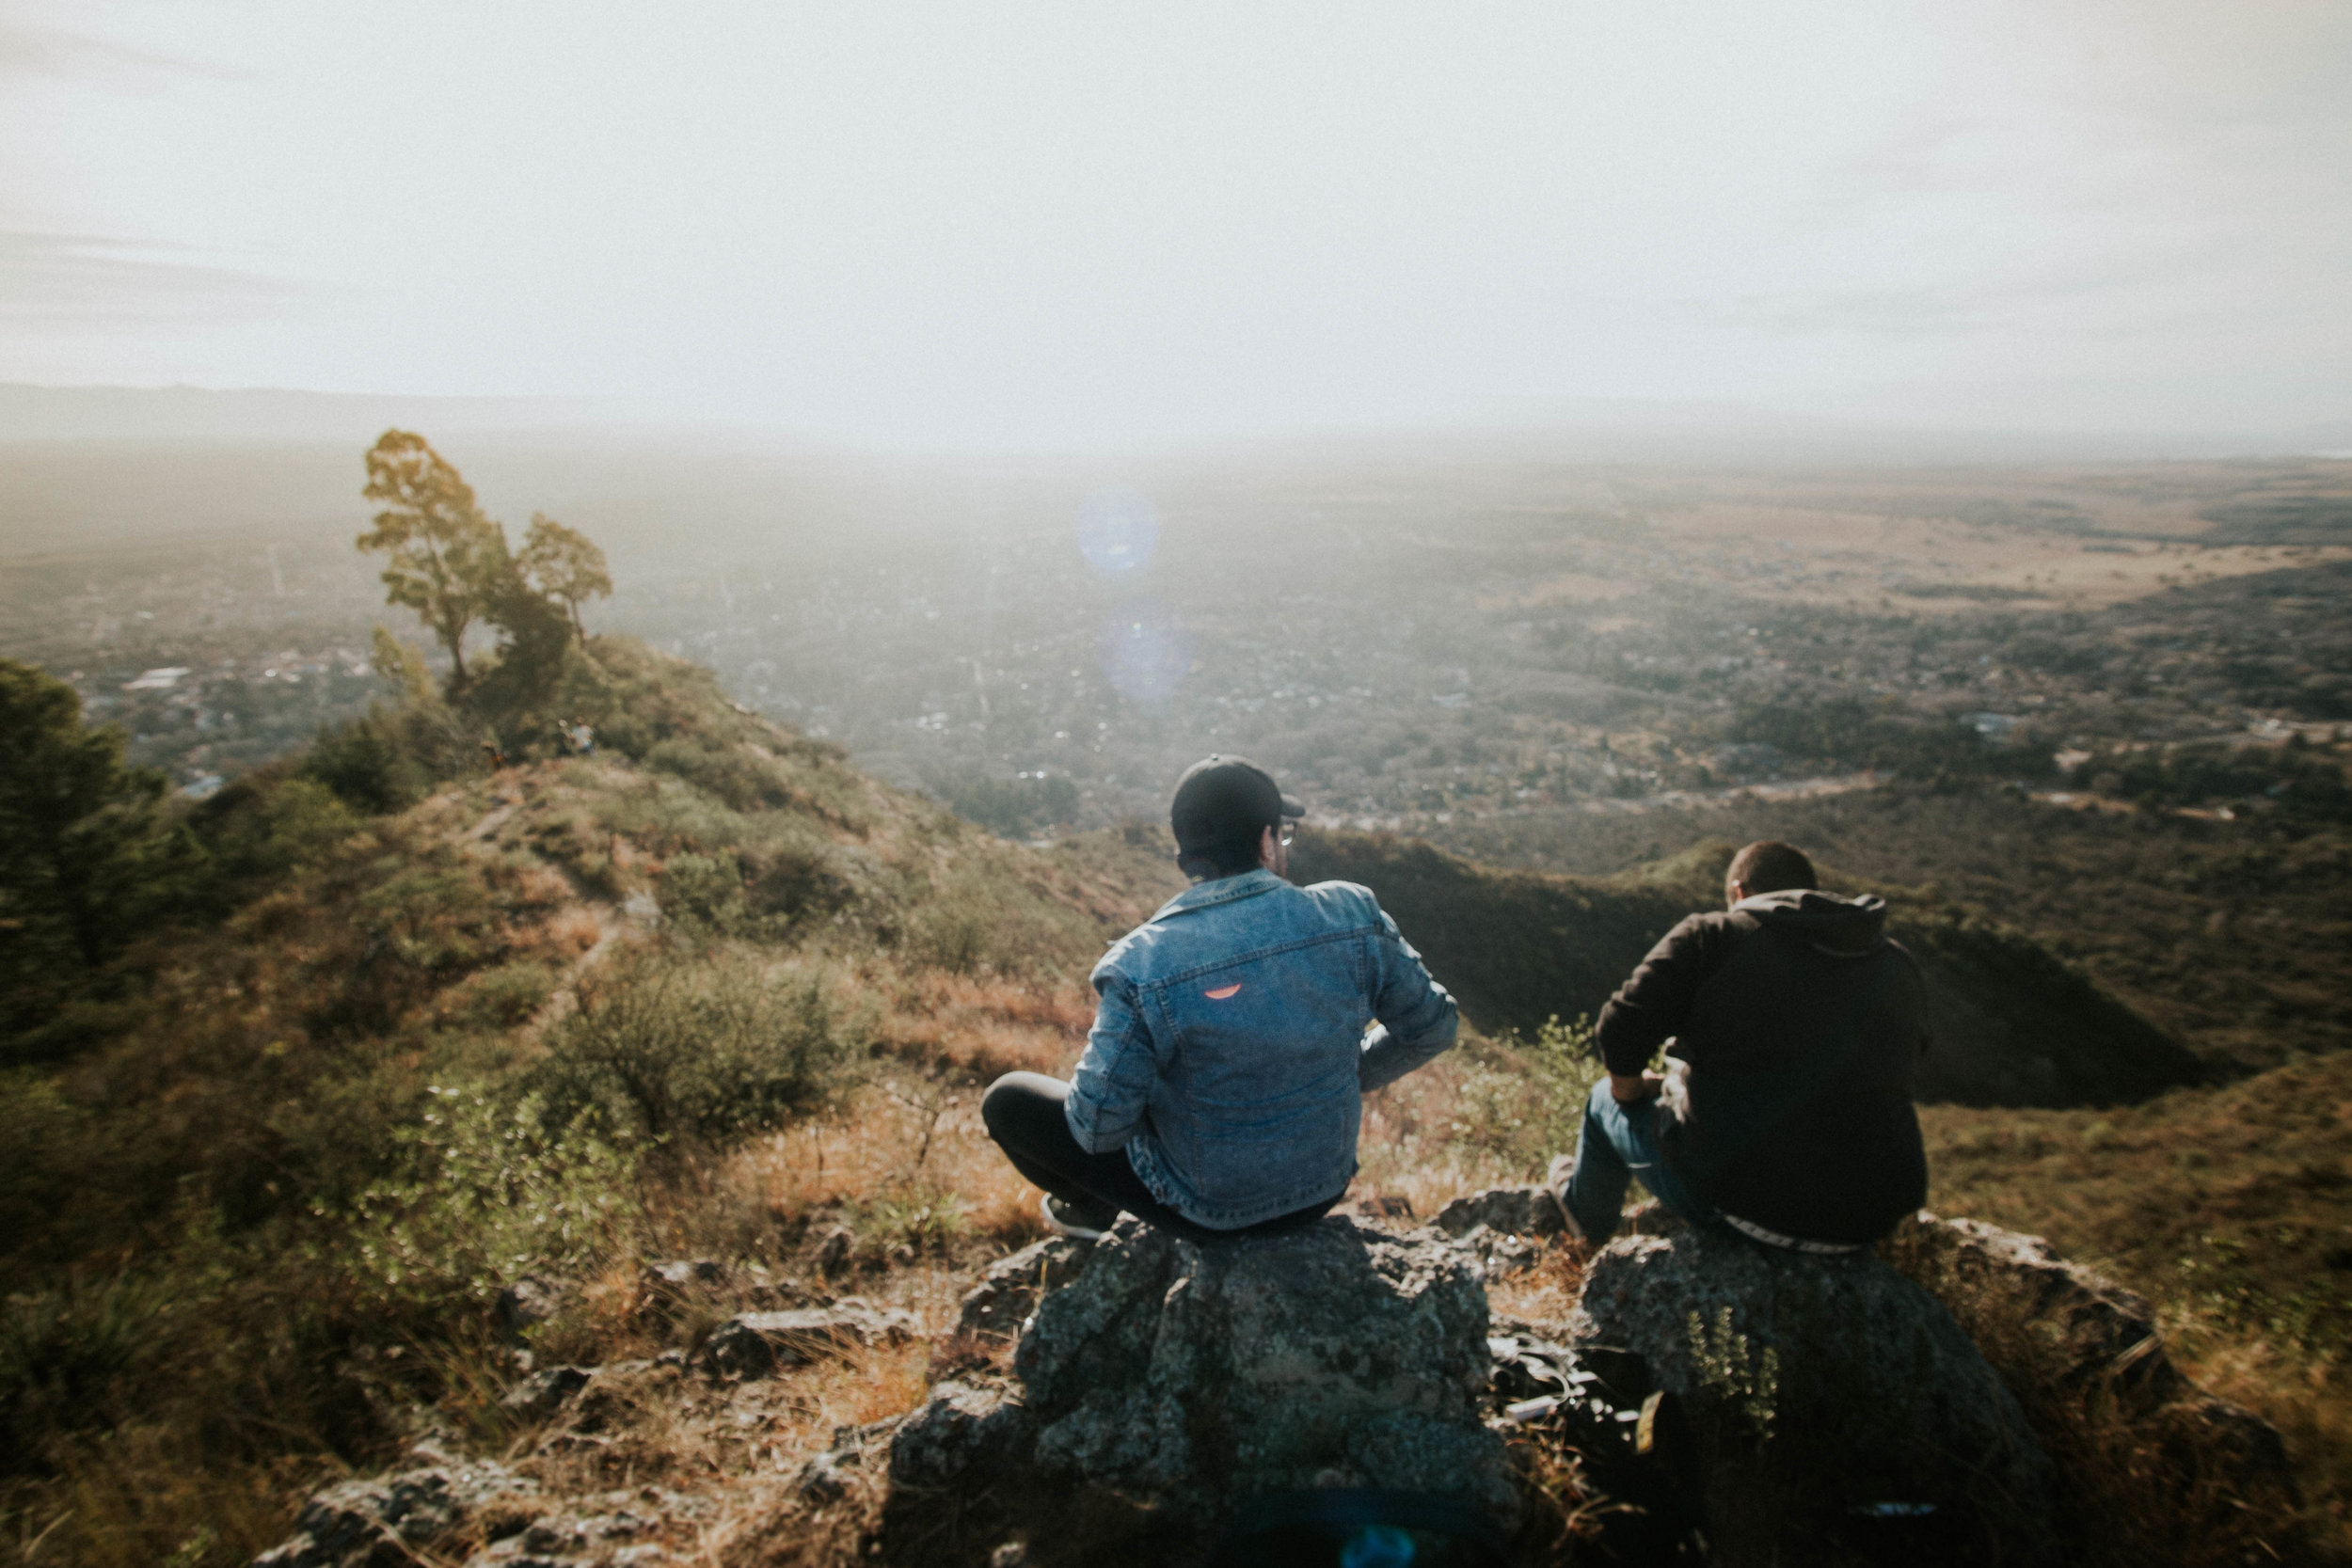 A friend comforting another friend while sitting on a mountain overlooking the desert.